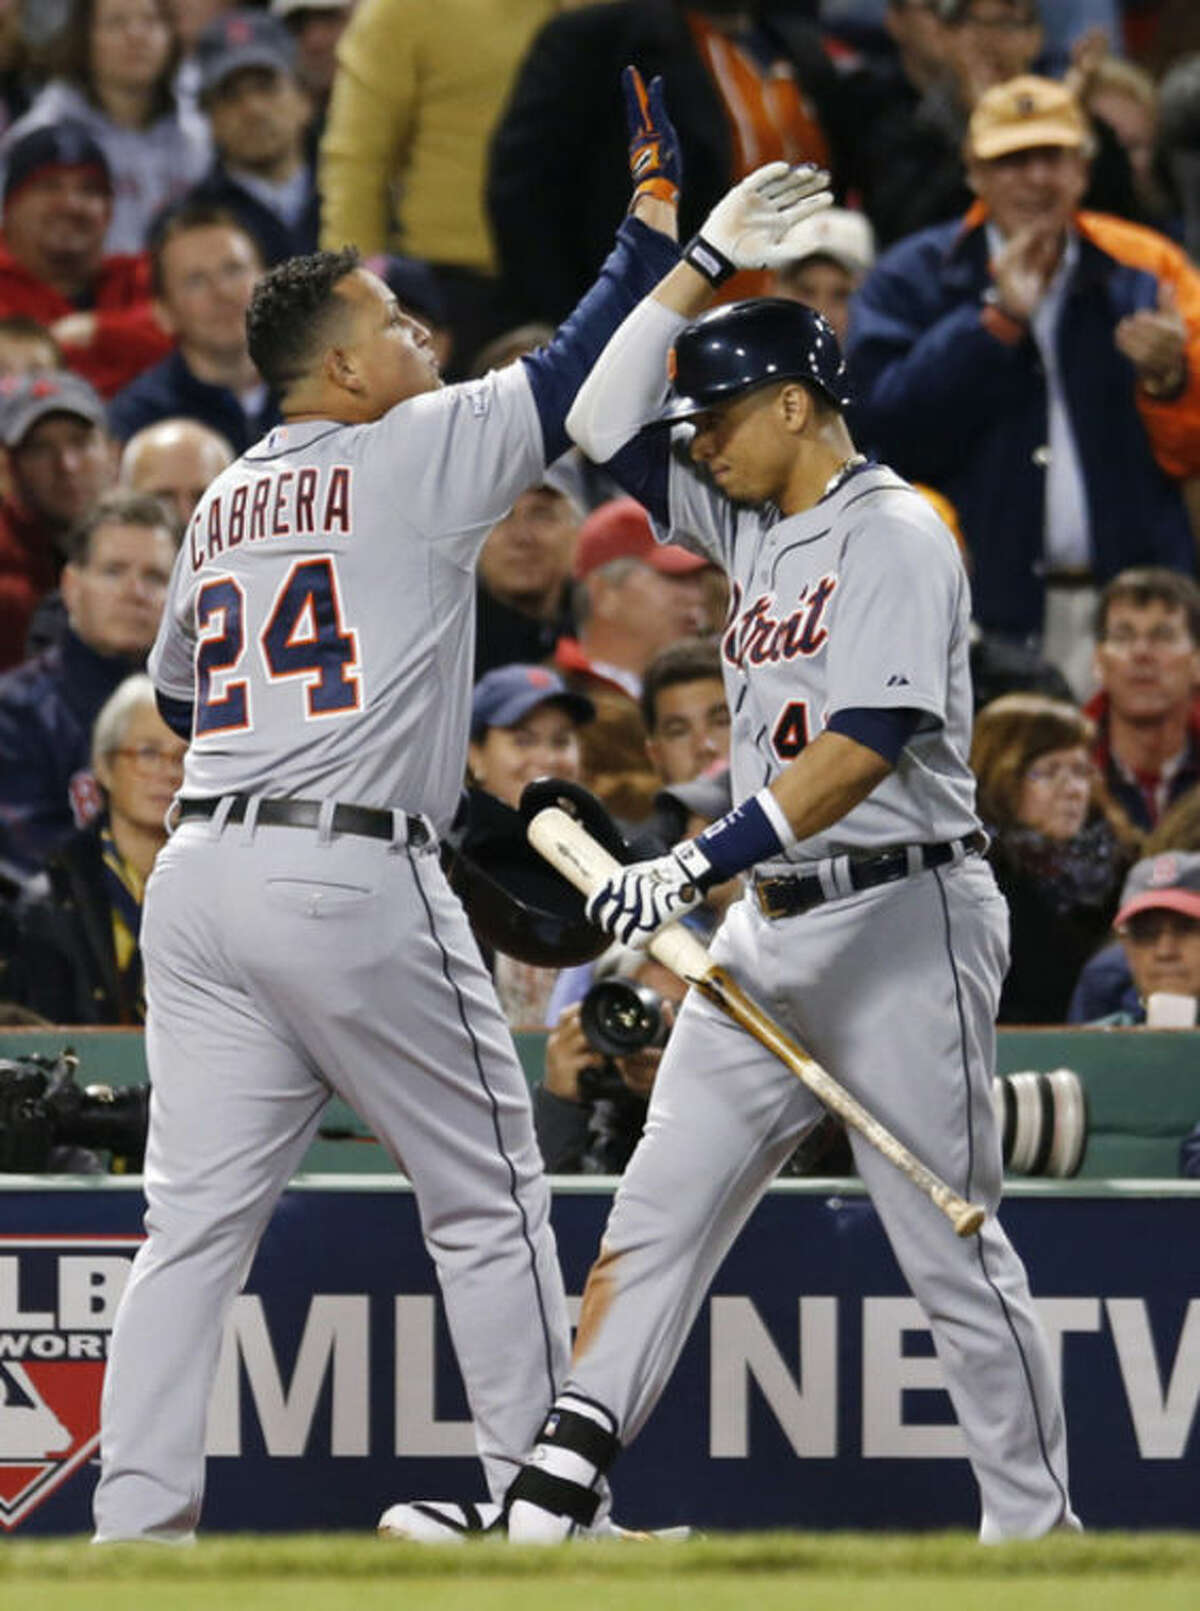 Detroit Tigers' Miguel Cabrera celebrates with Victor Martinez after hitting a home run in the sixth inning during Game 2 of the American League baseball championship series against the Boston Red Sox Sunday, Oct. 13, 2013, in Boston. (AP Photo/Elise Amendola)